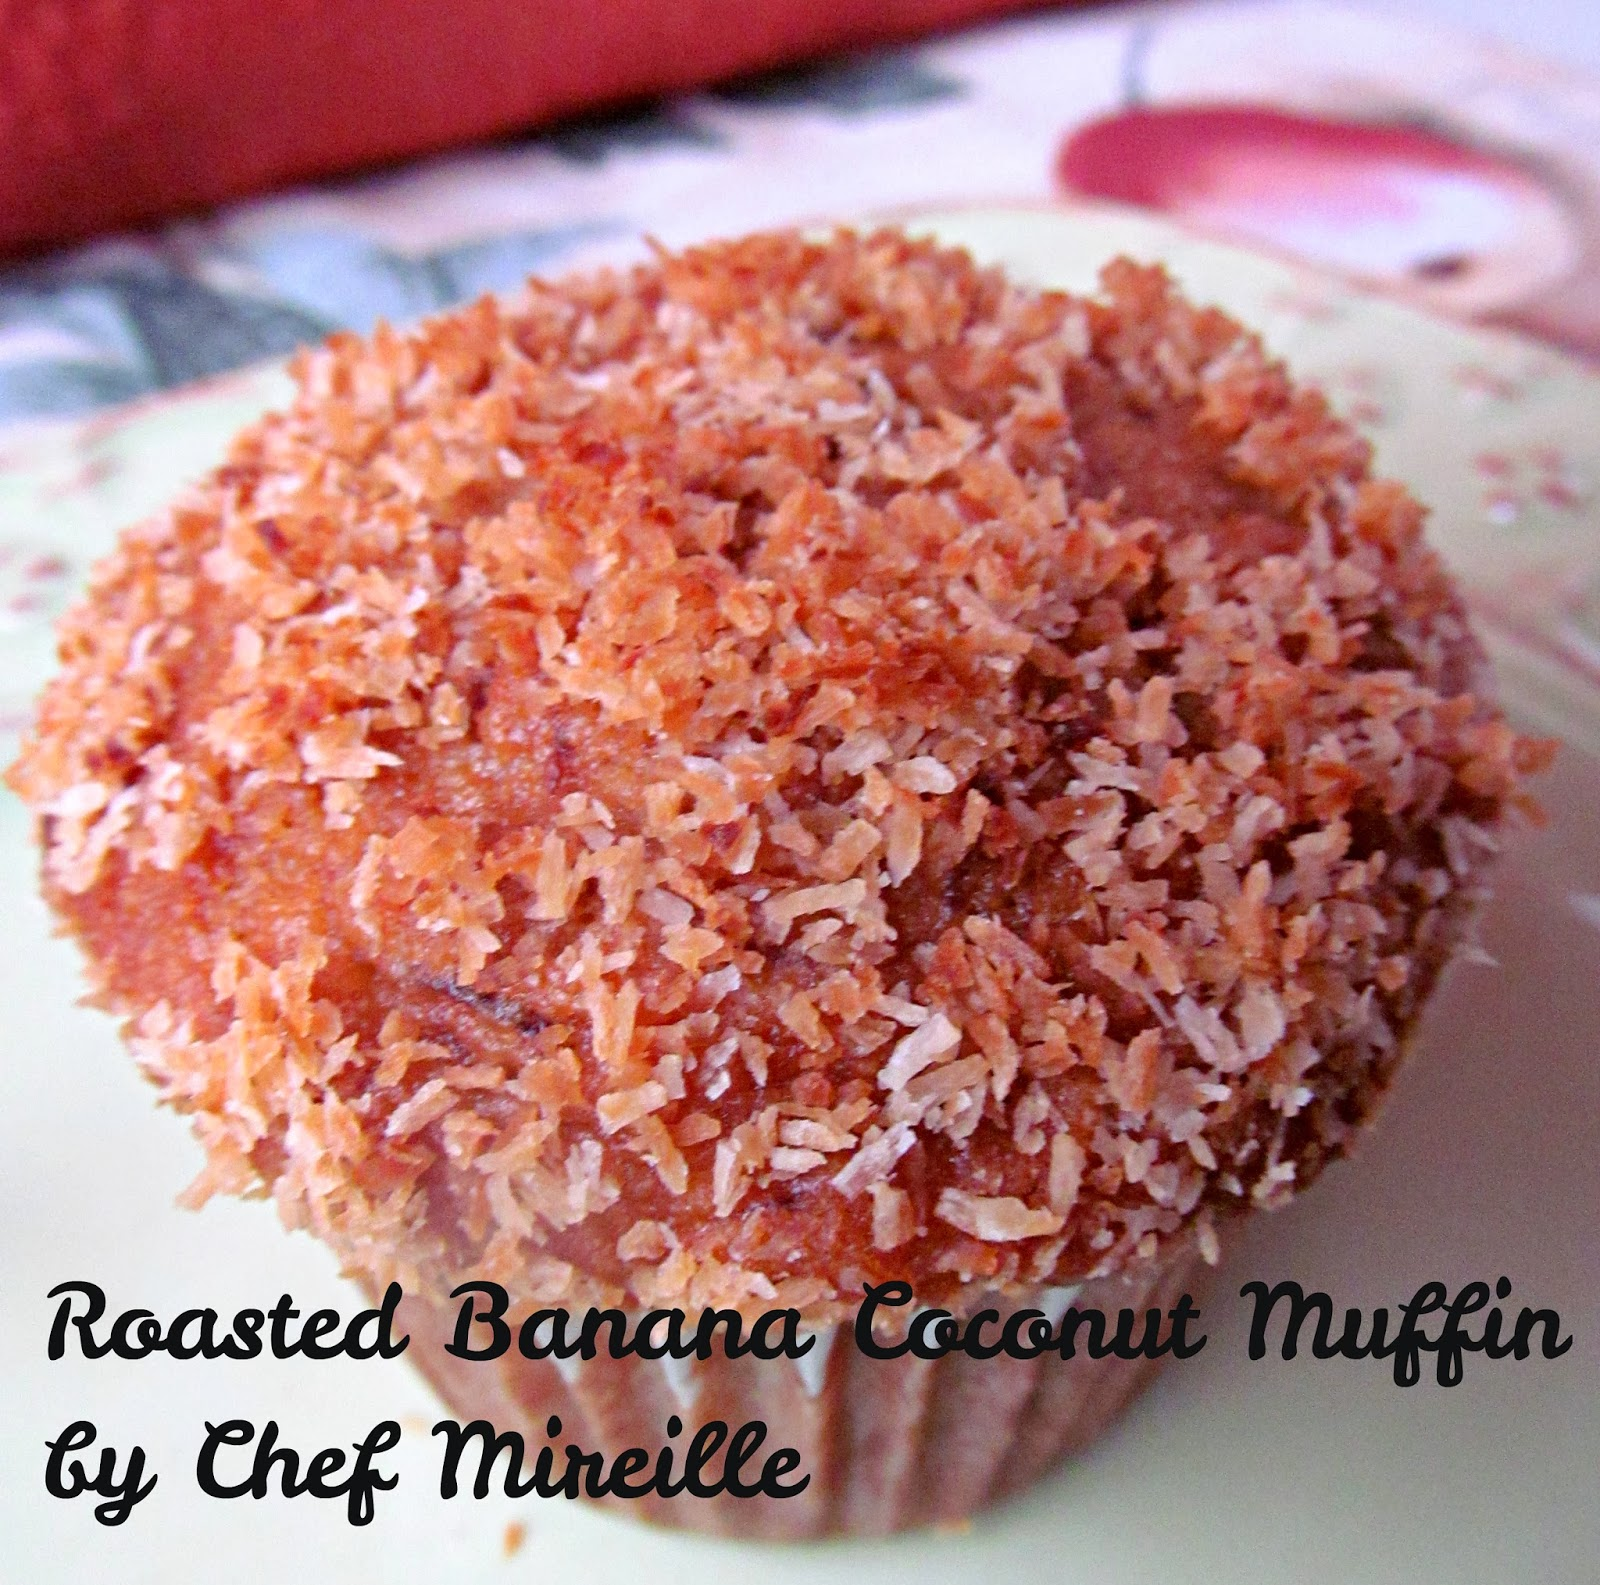 Roasted Banana Coconut Muffins - The Schizo Chef